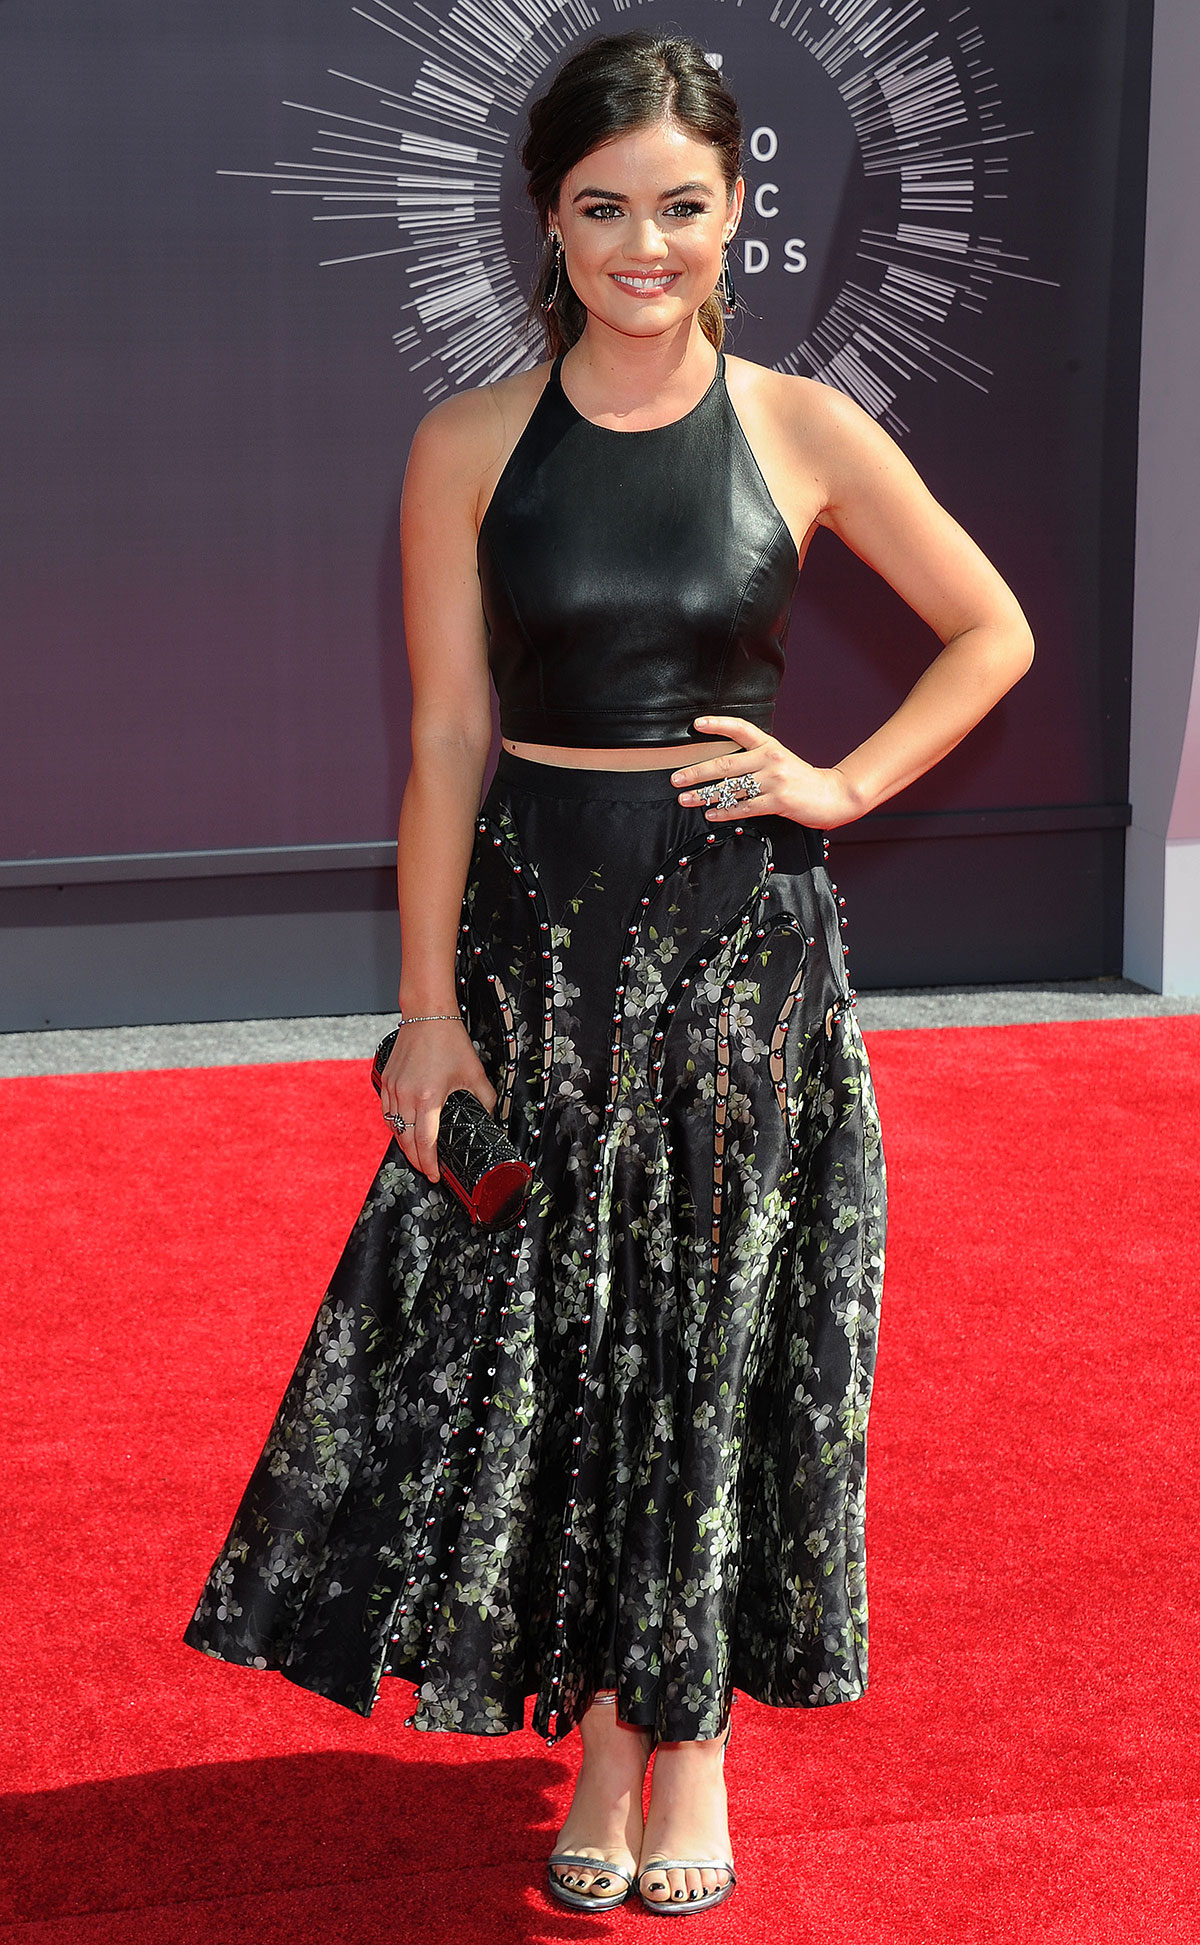 Lucy Hale attends 2014 MTV Video Music Awards